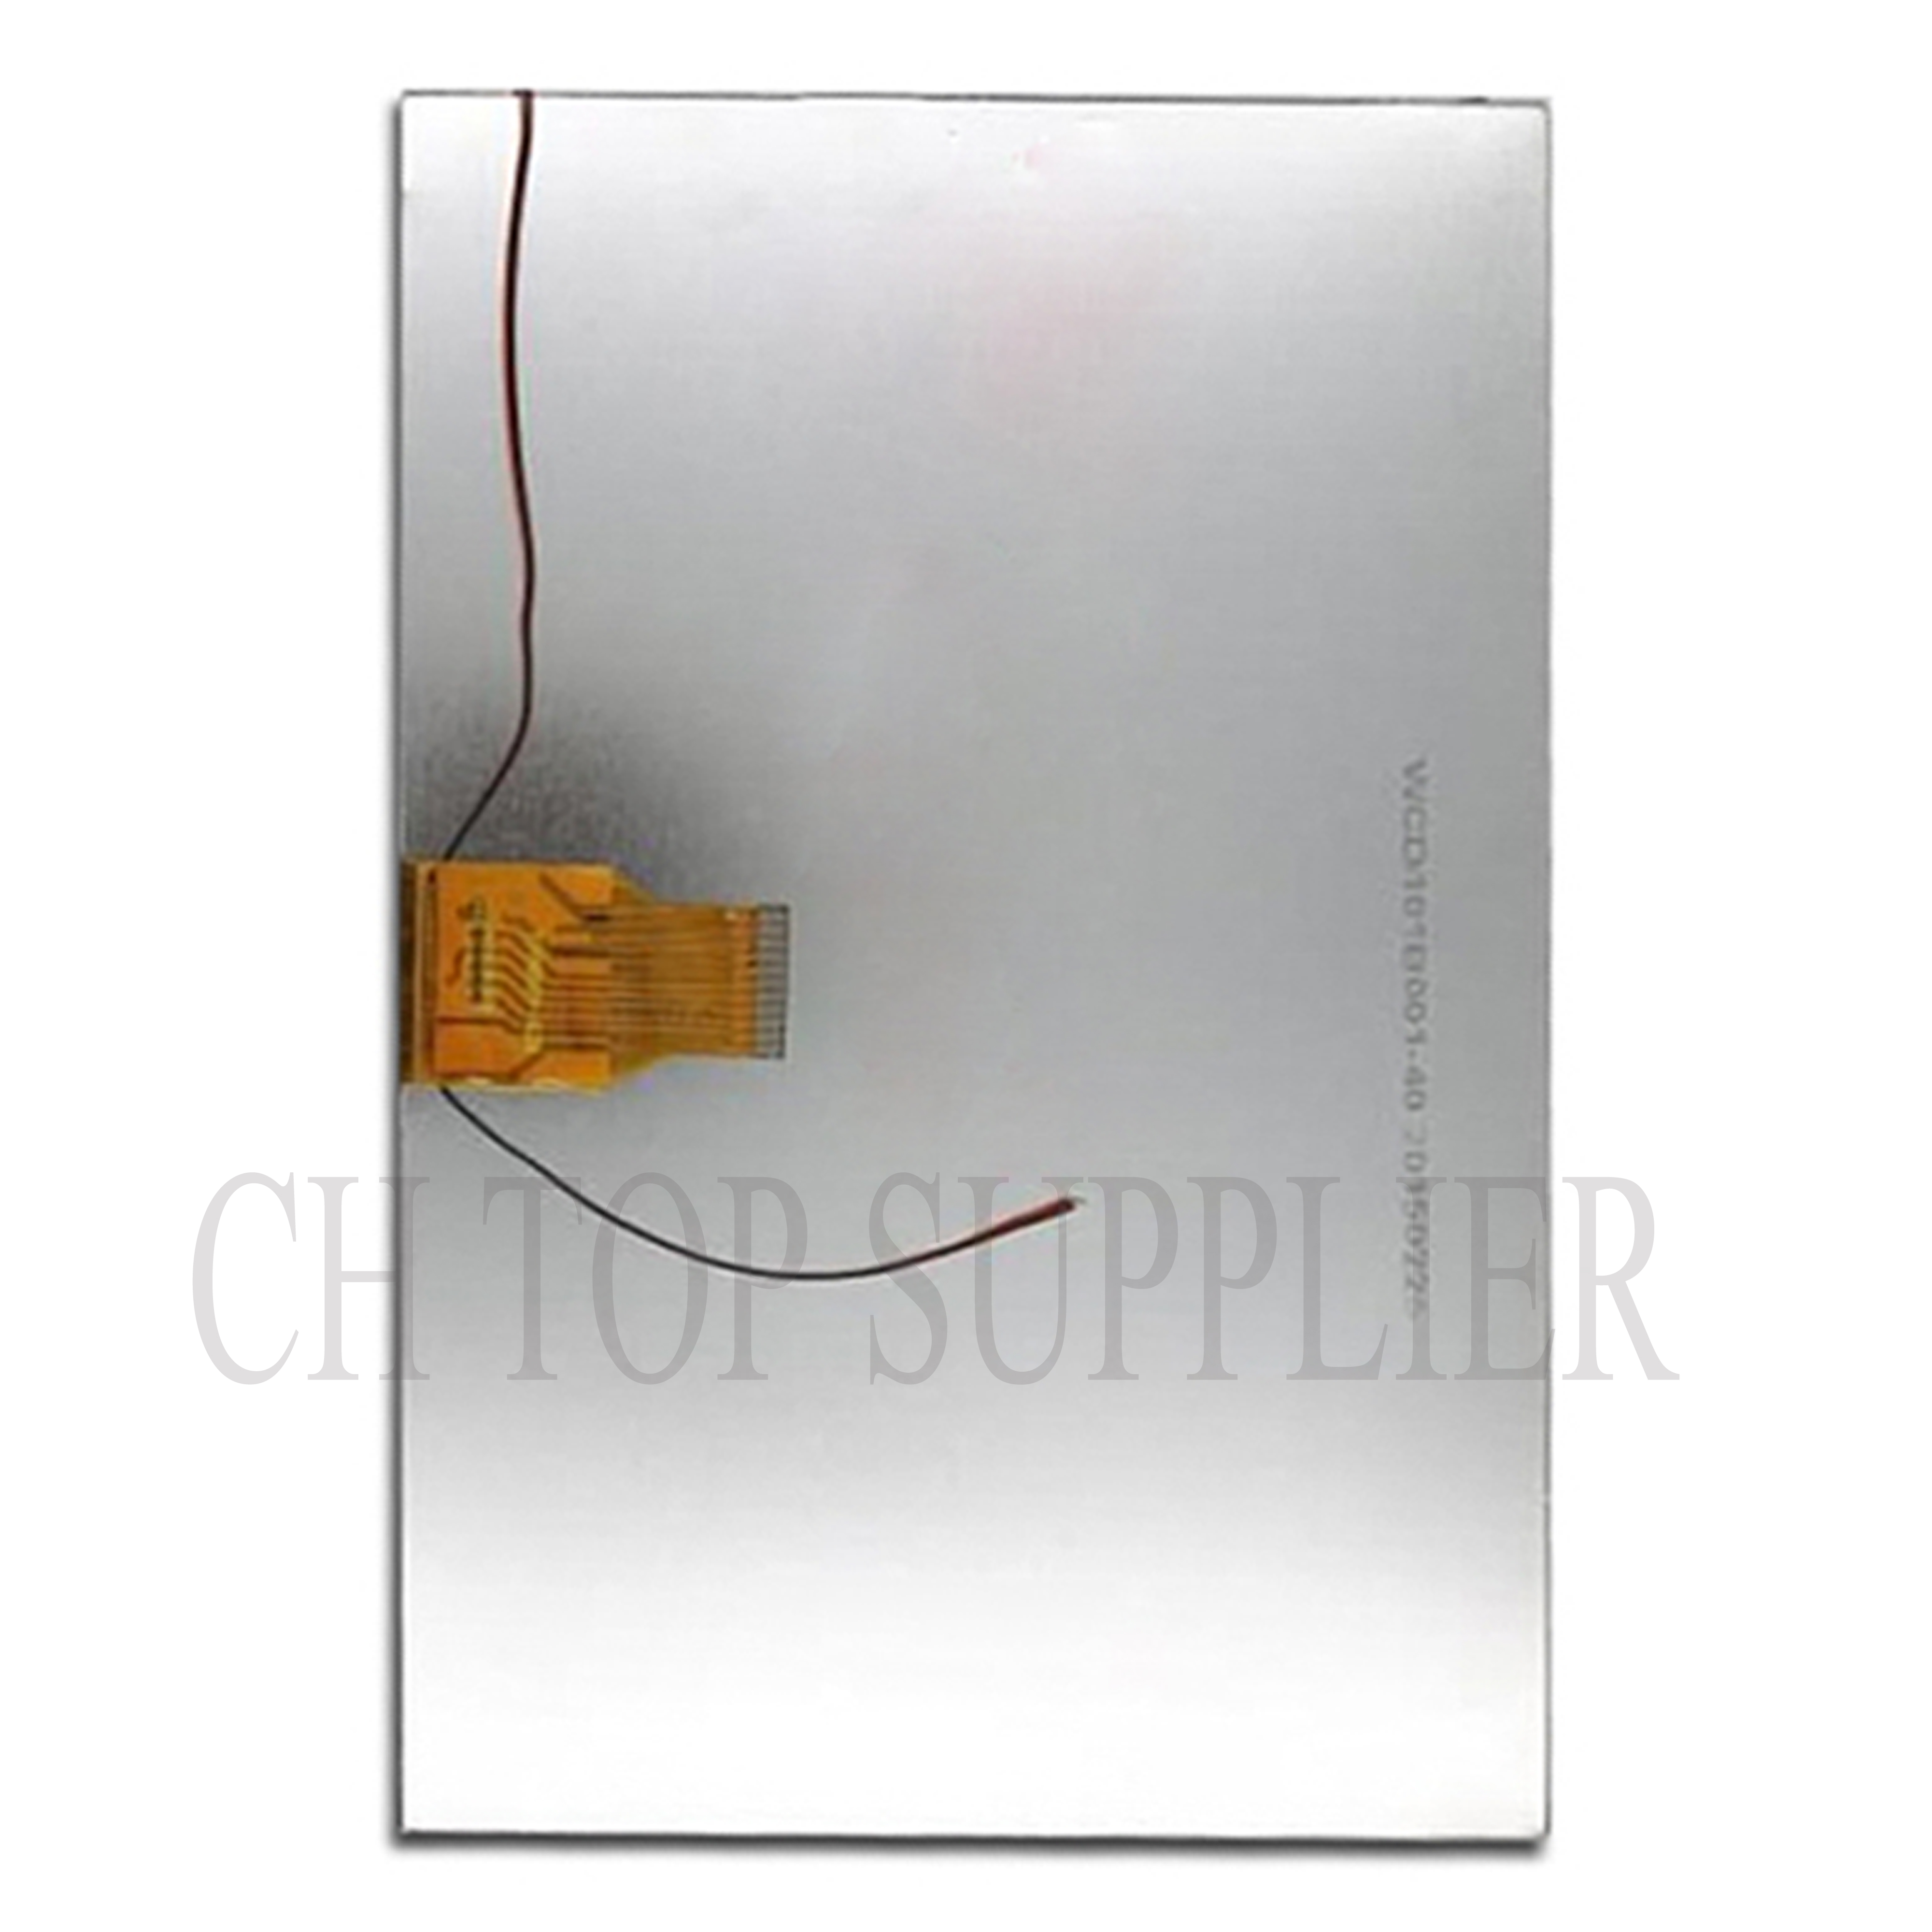 New 10.1'' inch LCD Display Sunstech TAB101DC Tablet TFT LCD Screen Matrix Replacement Panel Parts Free Shipping free shipping original 9 inch lcd screen cable numbers kr090lb3s 1030300647 40pin